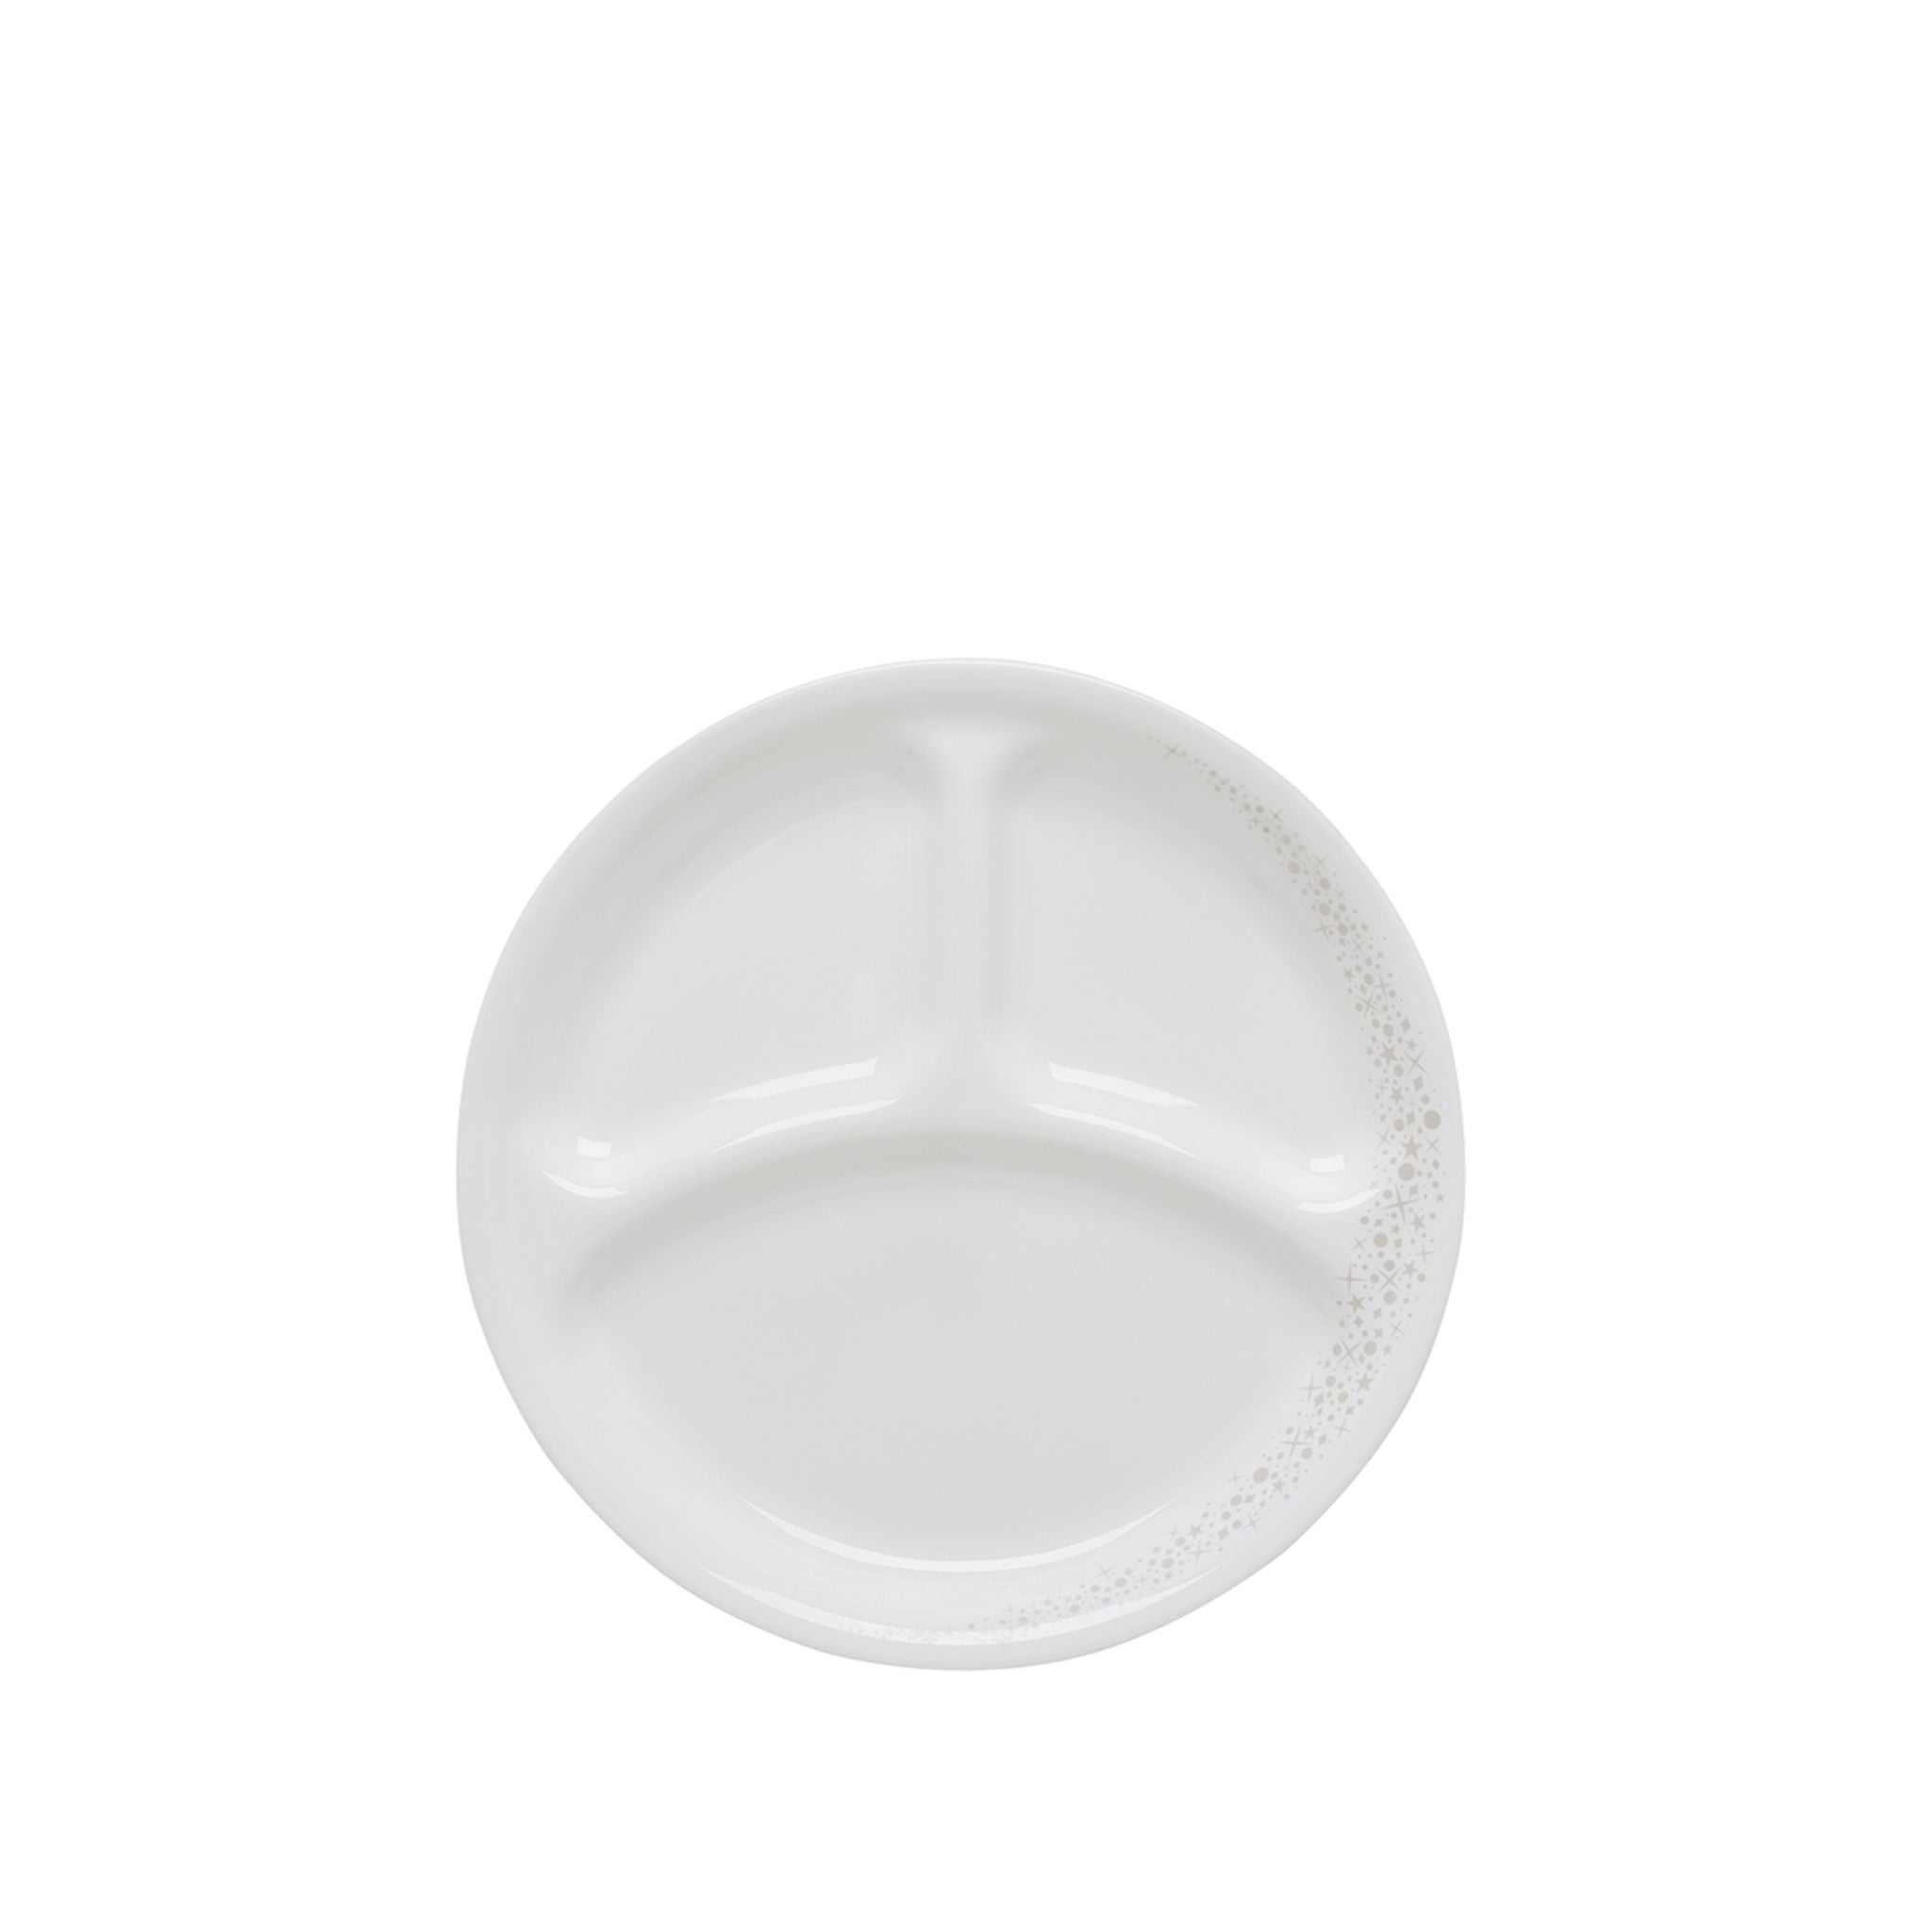 Corelle 21cm Divided Dish - Moonlight